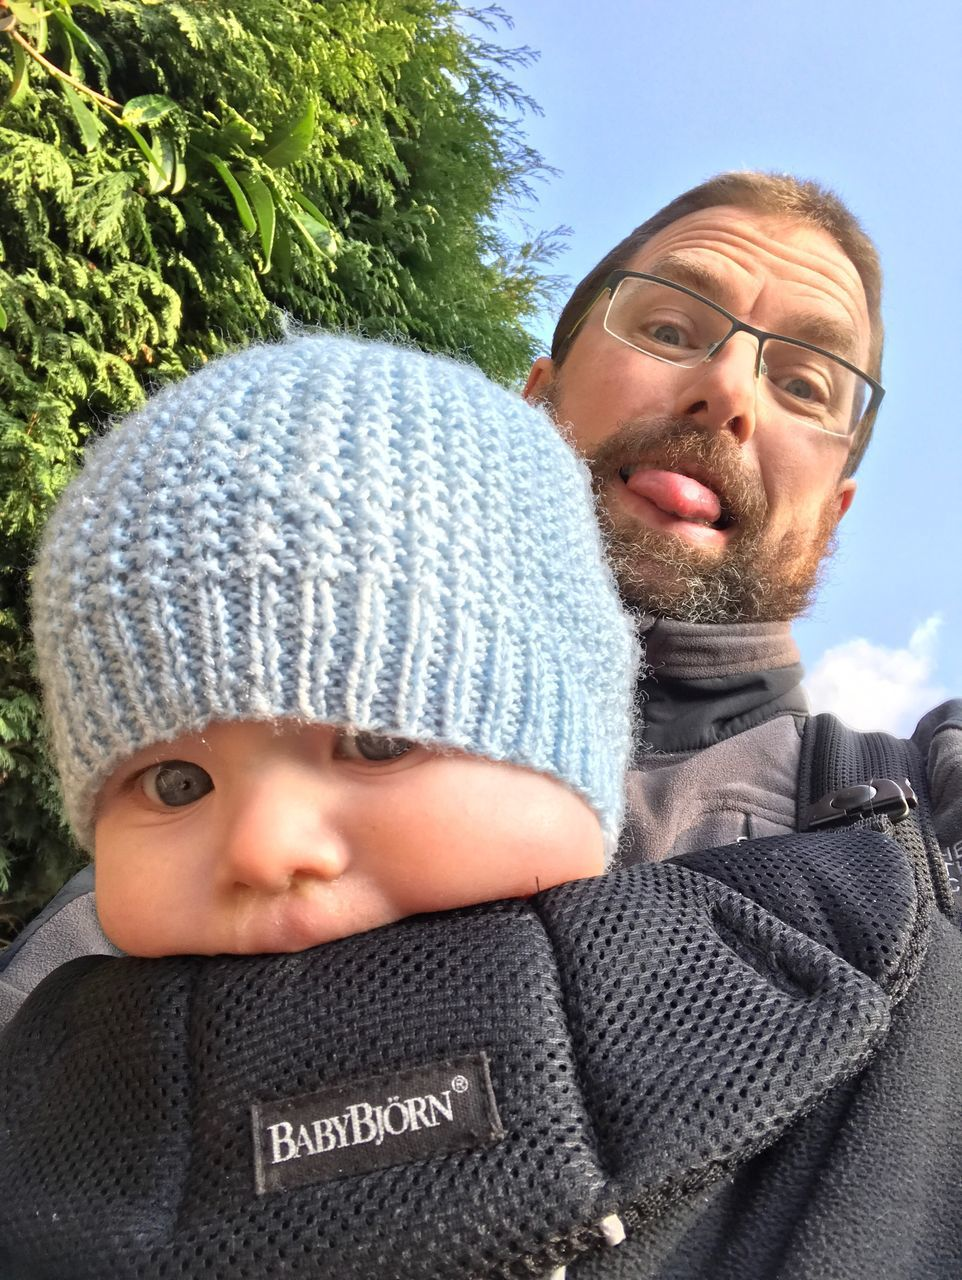 baby, front view, babyhood, looking at camera, portrait, headshot, childhood, real people, day, lifestyles, close-up, one person, warm clothing, eyeglasses, outdoors, people